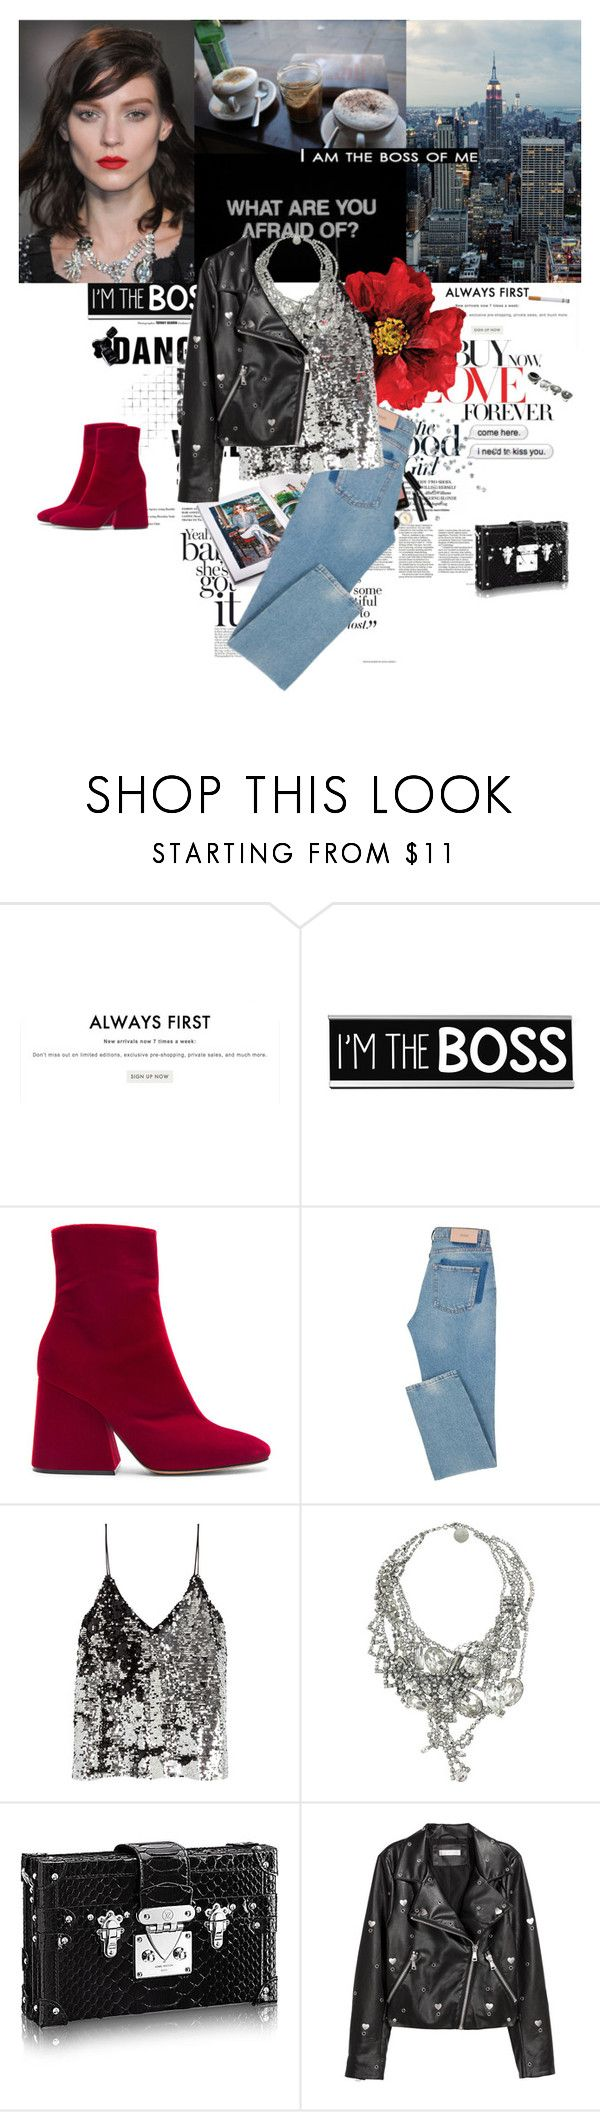 """I am the boss of me"" by karliuxxx ❤ liked on Polyvore featuring Gianvito Rossi, Cotton Candy, Maison Margiela, Bobbi Brown Cosmetics, KEEP ME, Samsøe & Samsøe, Tom Binns, H&M and Chanel"